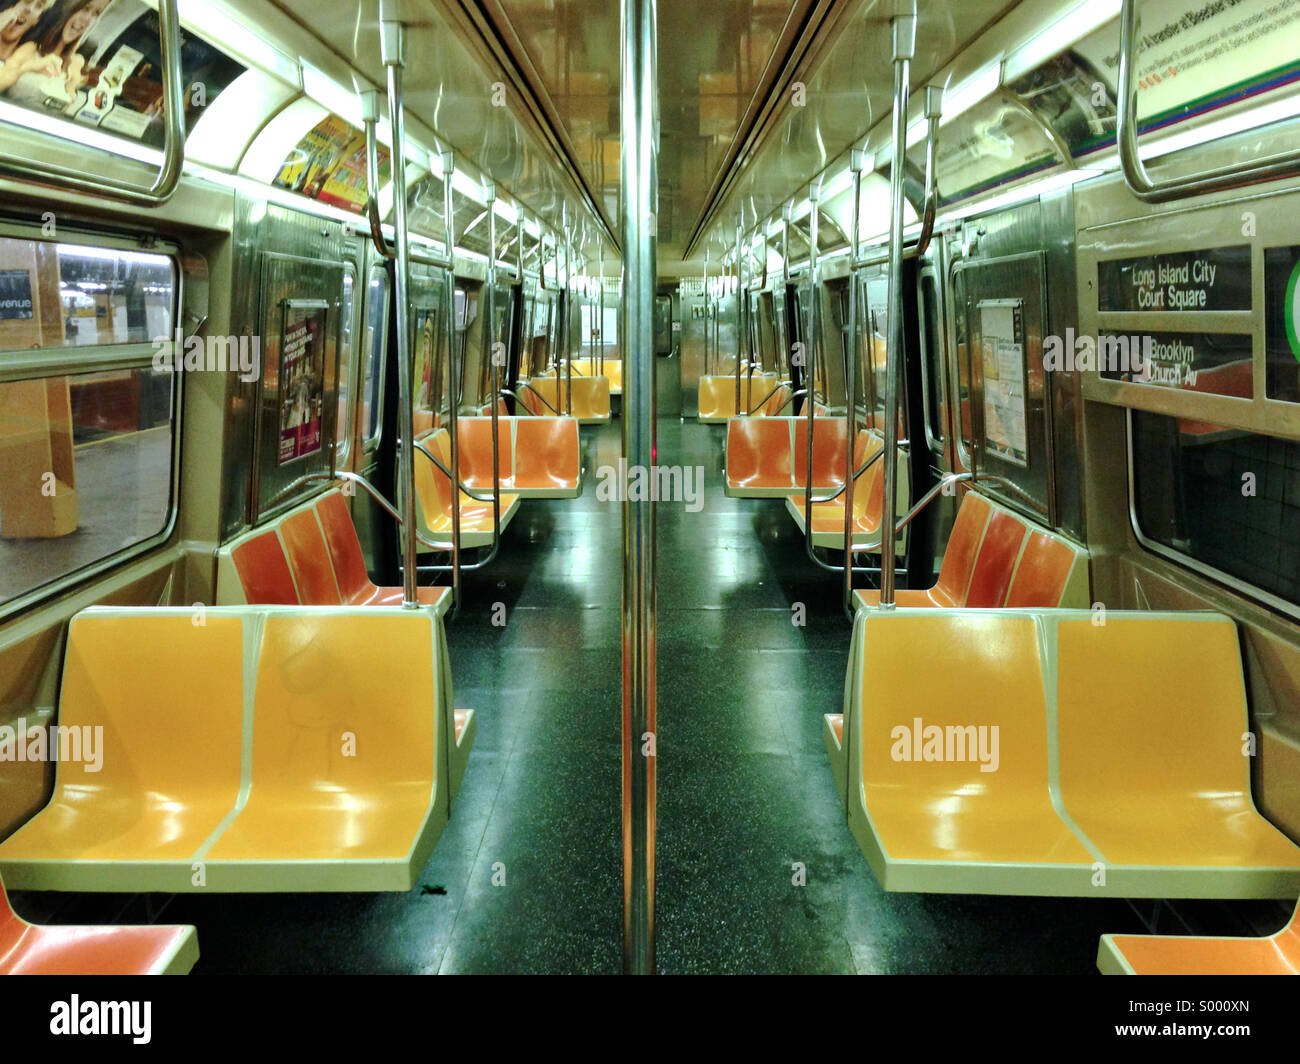 interior de un mta new york city g tren metro de coches foto imagen de stock 309787373 alamy. Black Bedroom Furniture Sets. Home Design Ideas